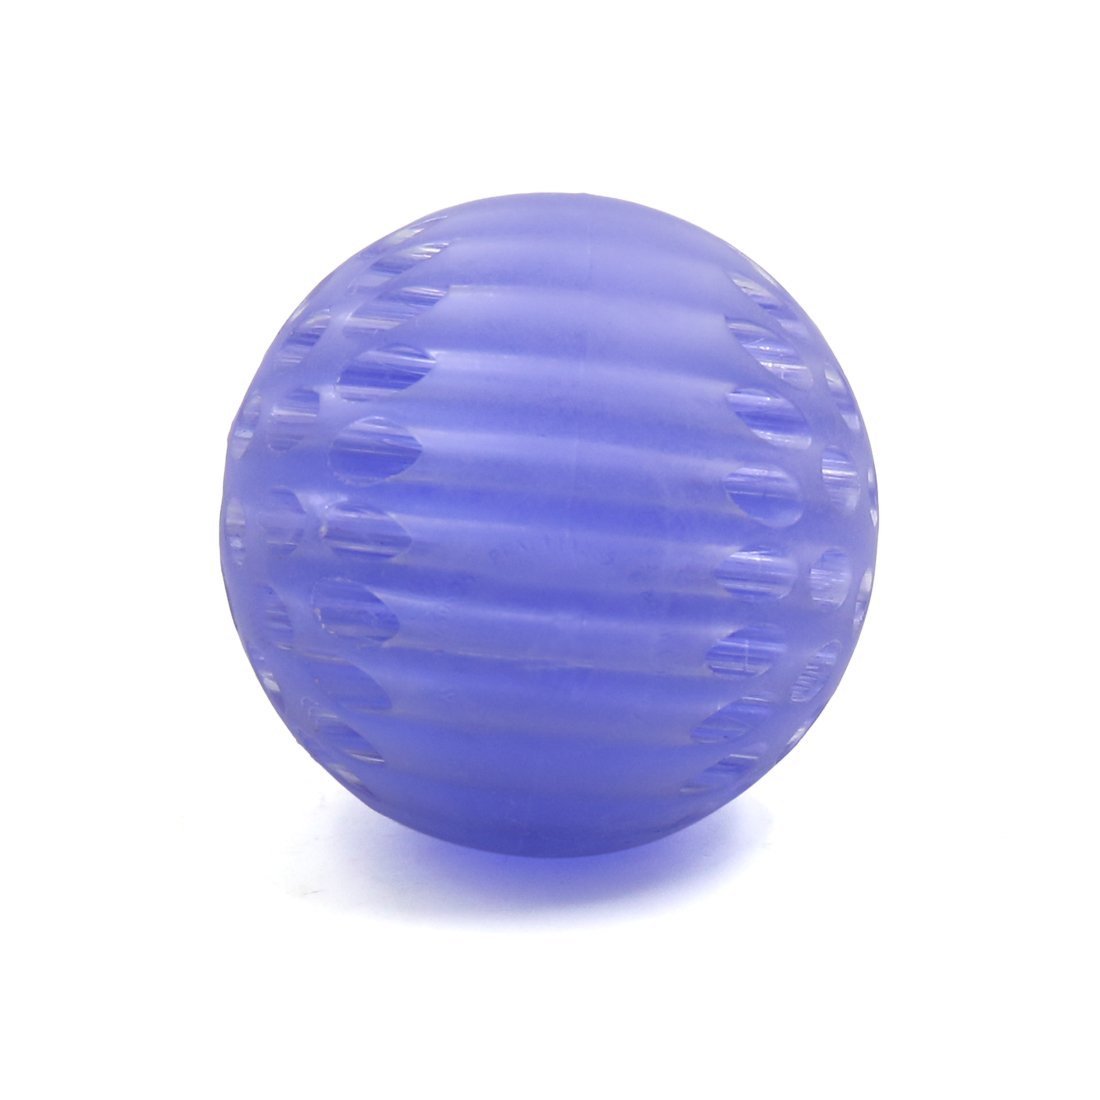 uxcellBlue Hollow Silicone Hand Fingers Grip Ball Muscle Knots Wrist Joint Relax Massage Exerciser Gripping Balls a17041900ux0213